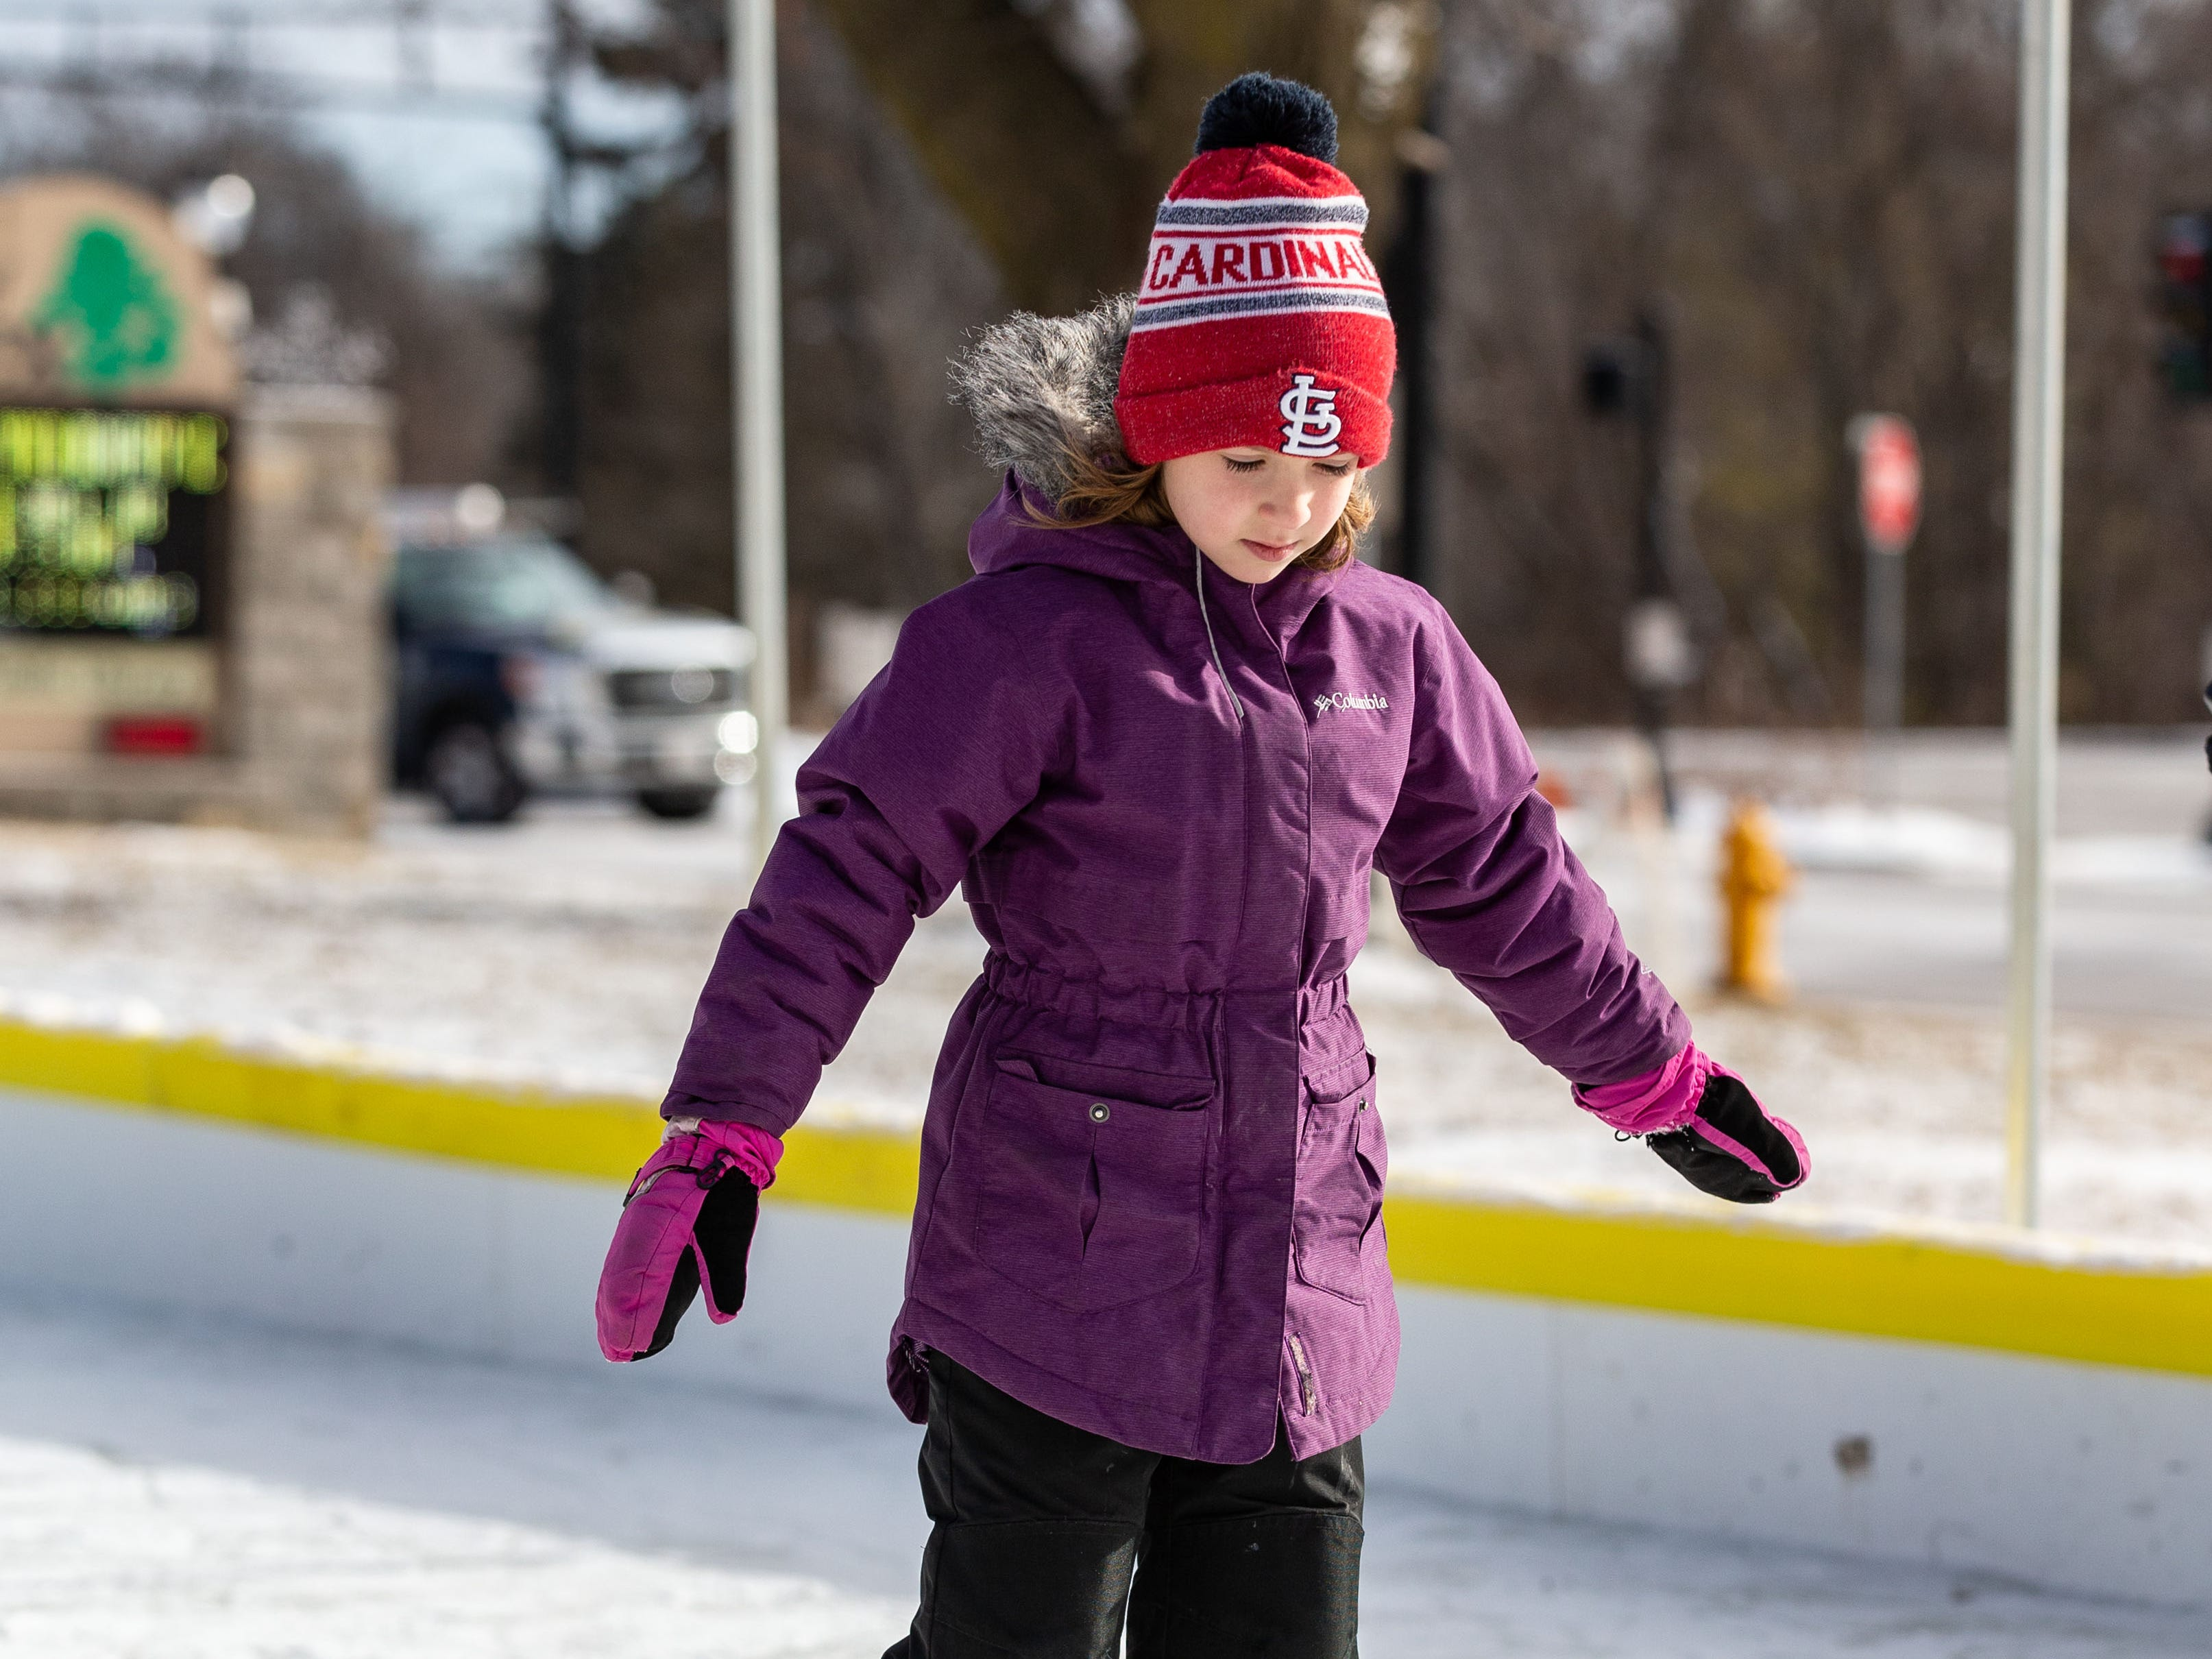 Six-year-old Emma Kulibert of Sussex glides around the Sussex Civic Center ice rink on Sunday, Dec. 30, 2018. The rink is open seven days a week as weather permits. For hours and info visit villagesussex.org.